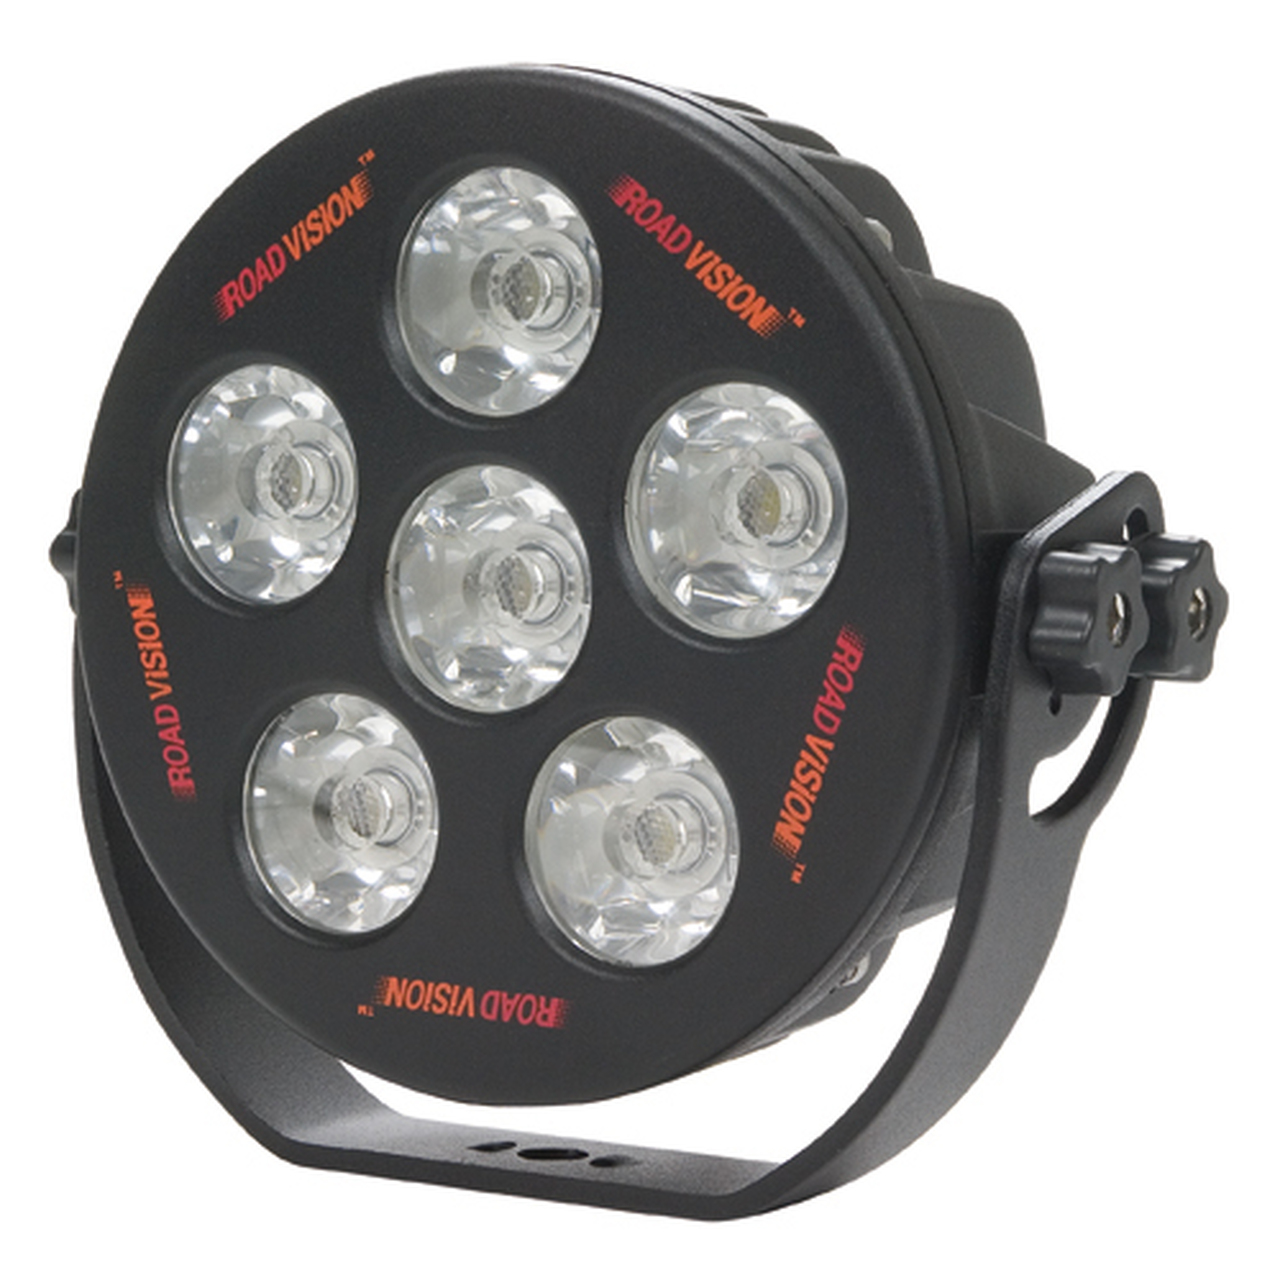 Work Light Flood Beam. 180 mm Round. LED6100F. 60 Watt. Submersible Water Rating: IP68. Submersible to 3 Metres